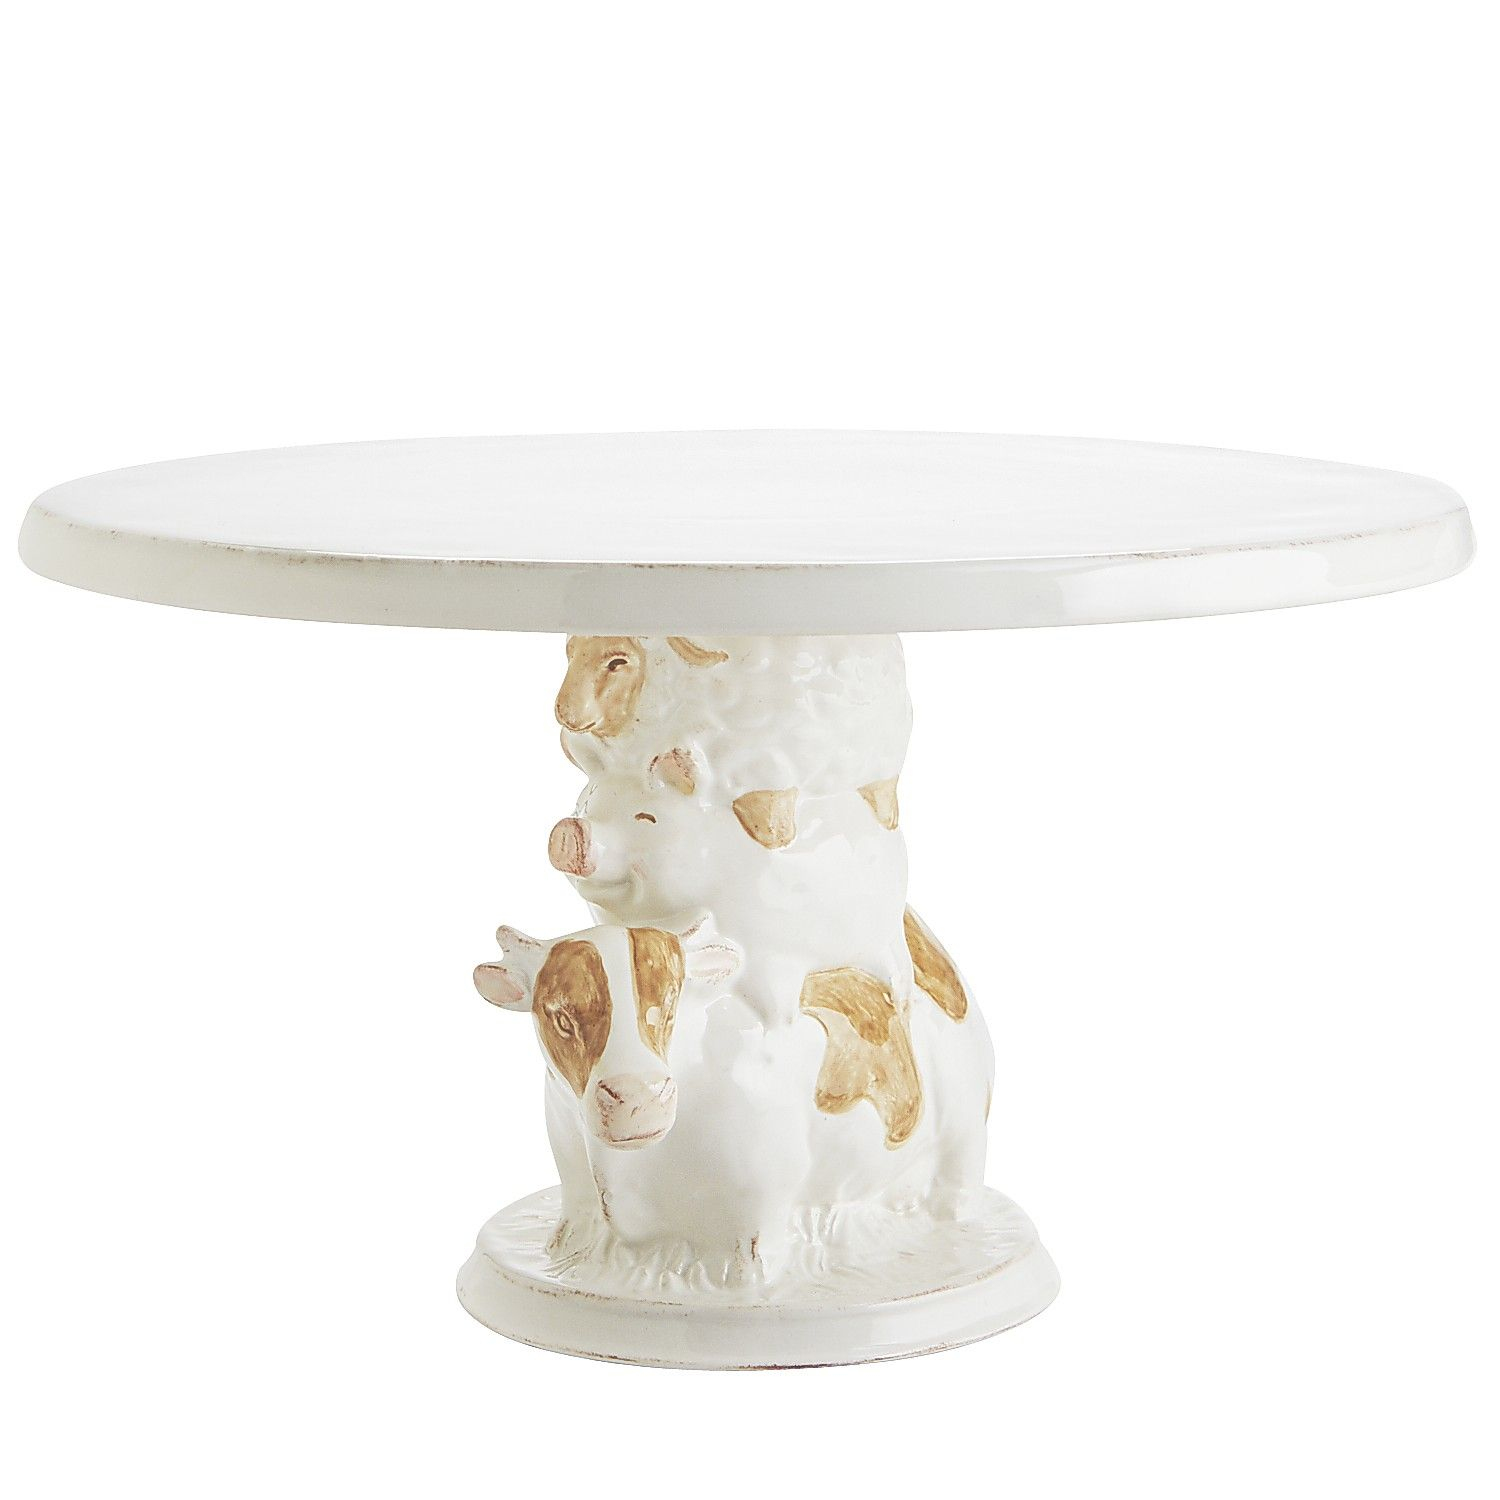 pdx classic wayfair stand dome pedestal glass classictouch tabletop touch cake kitchen